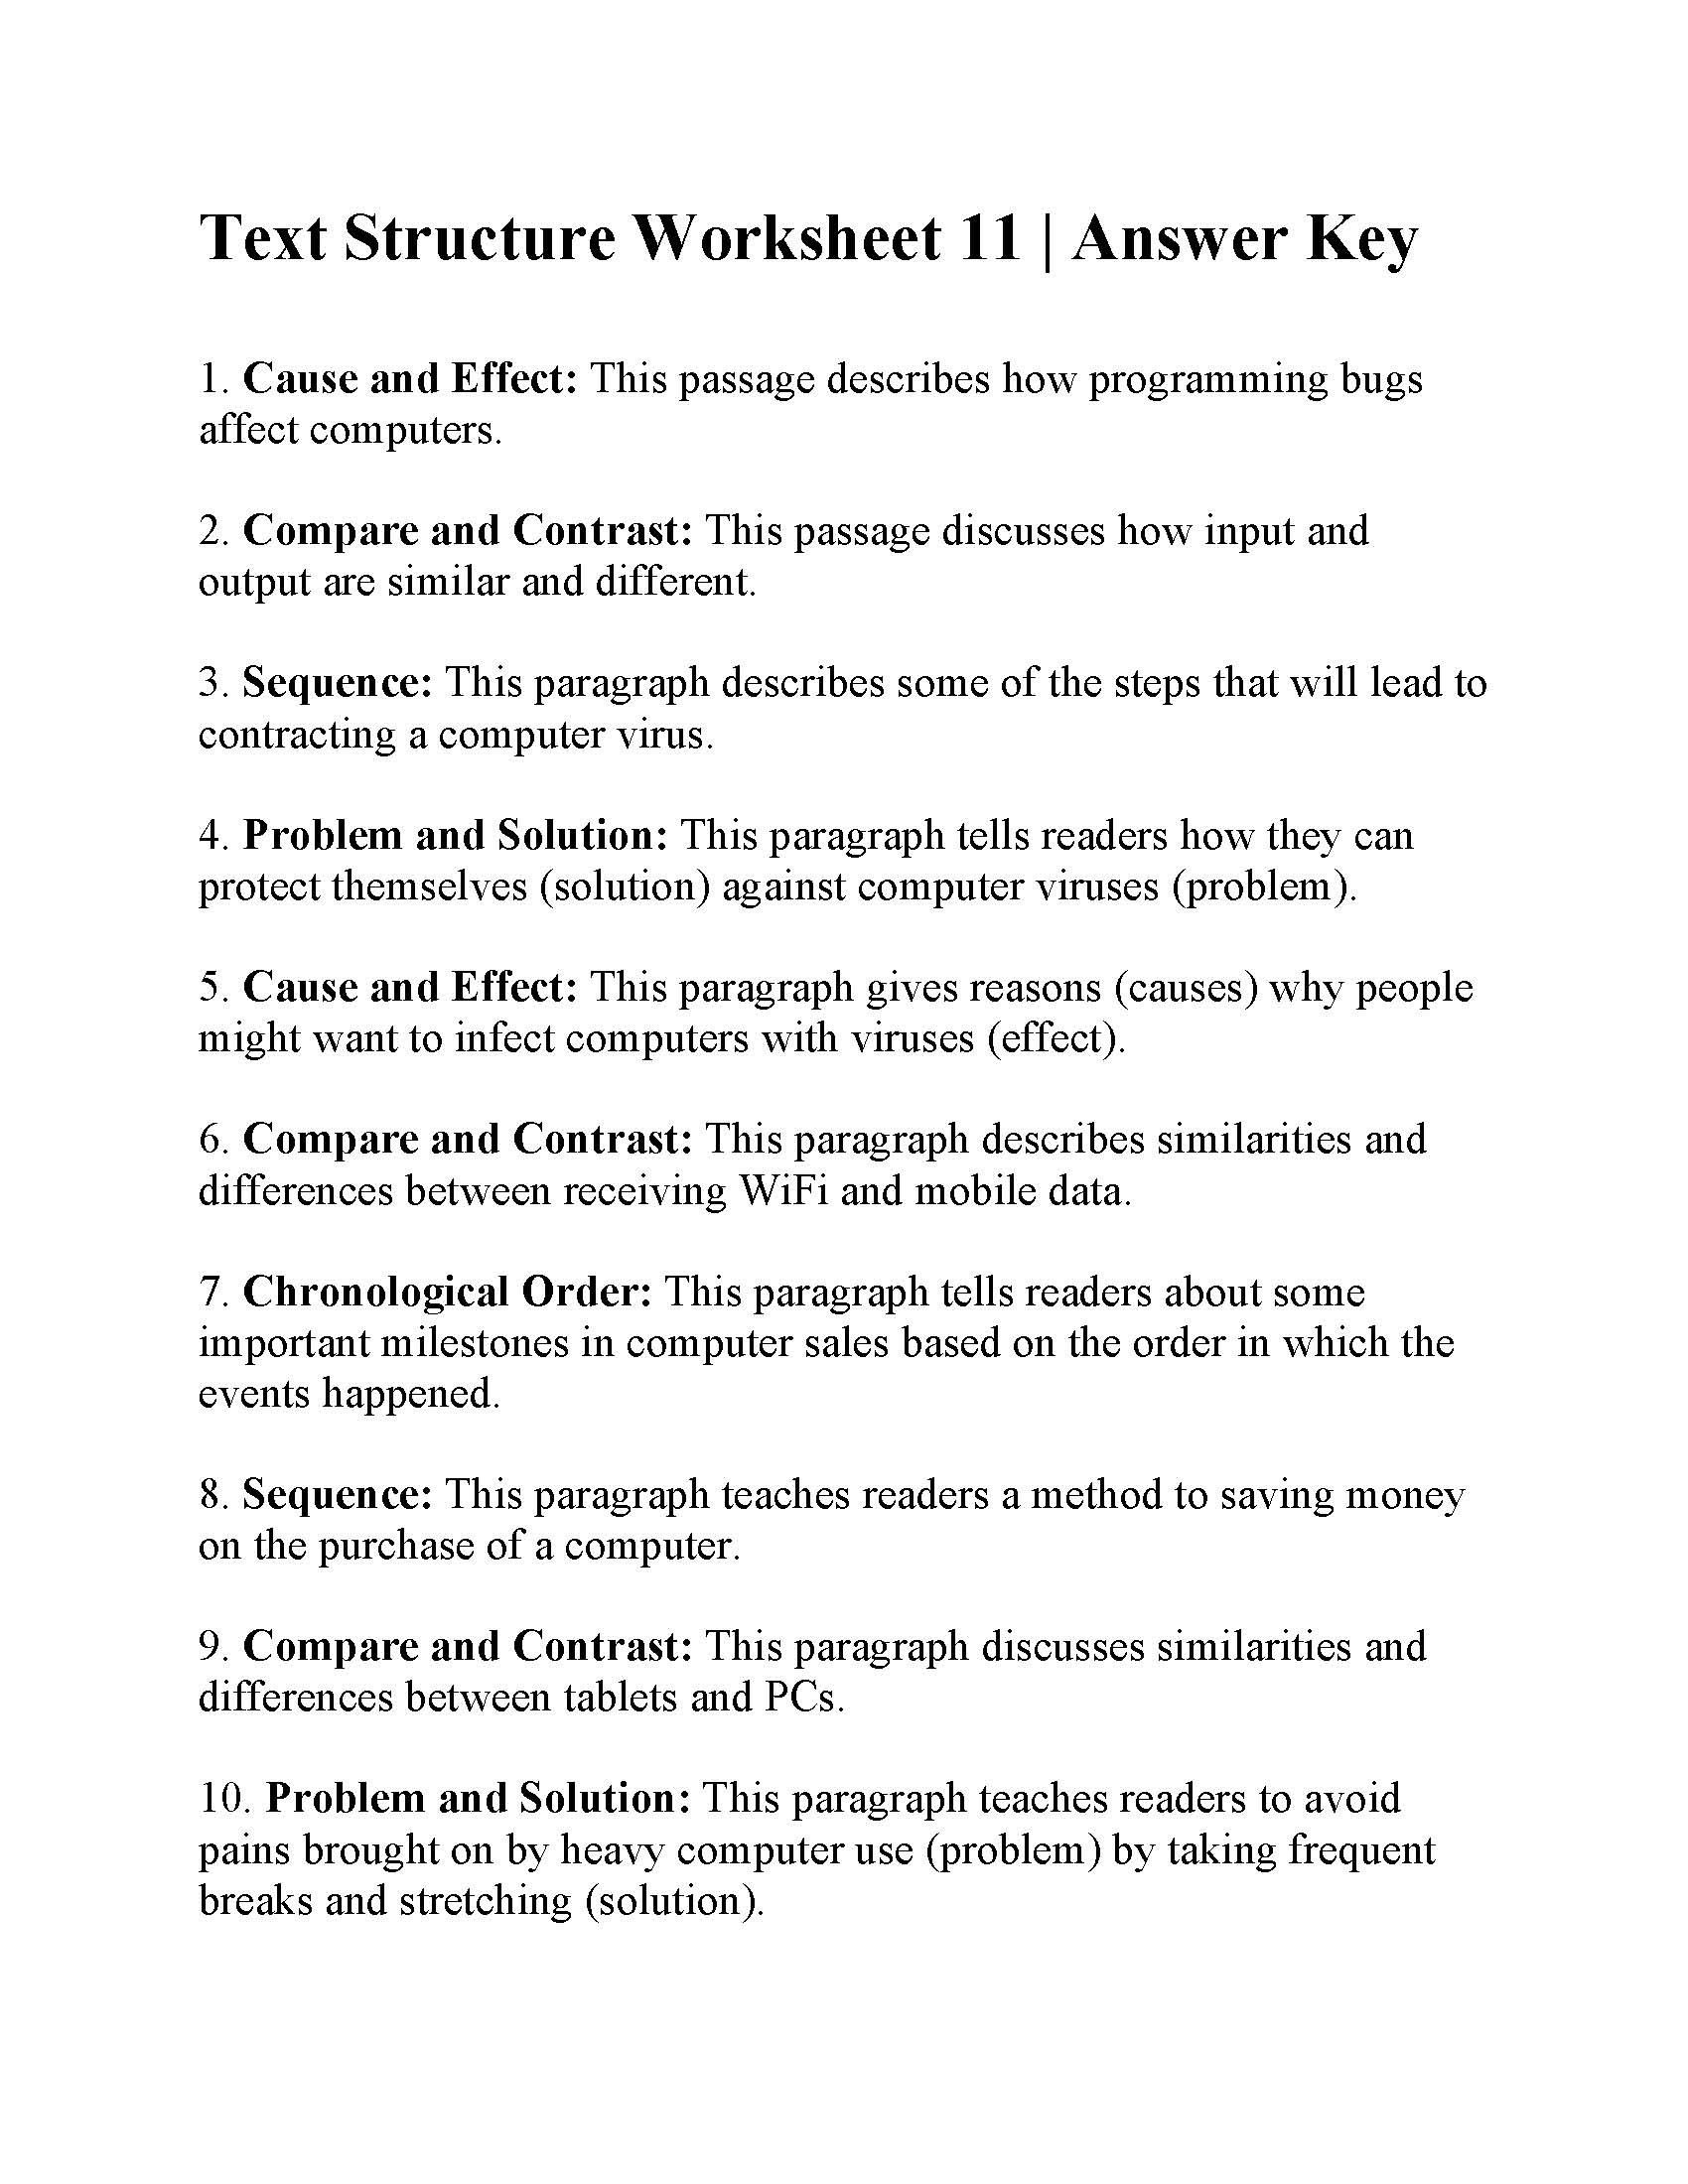 Text Structure 3rd Grade Worksheets Text Structure Worksheet Answers Worksheets for Play Group